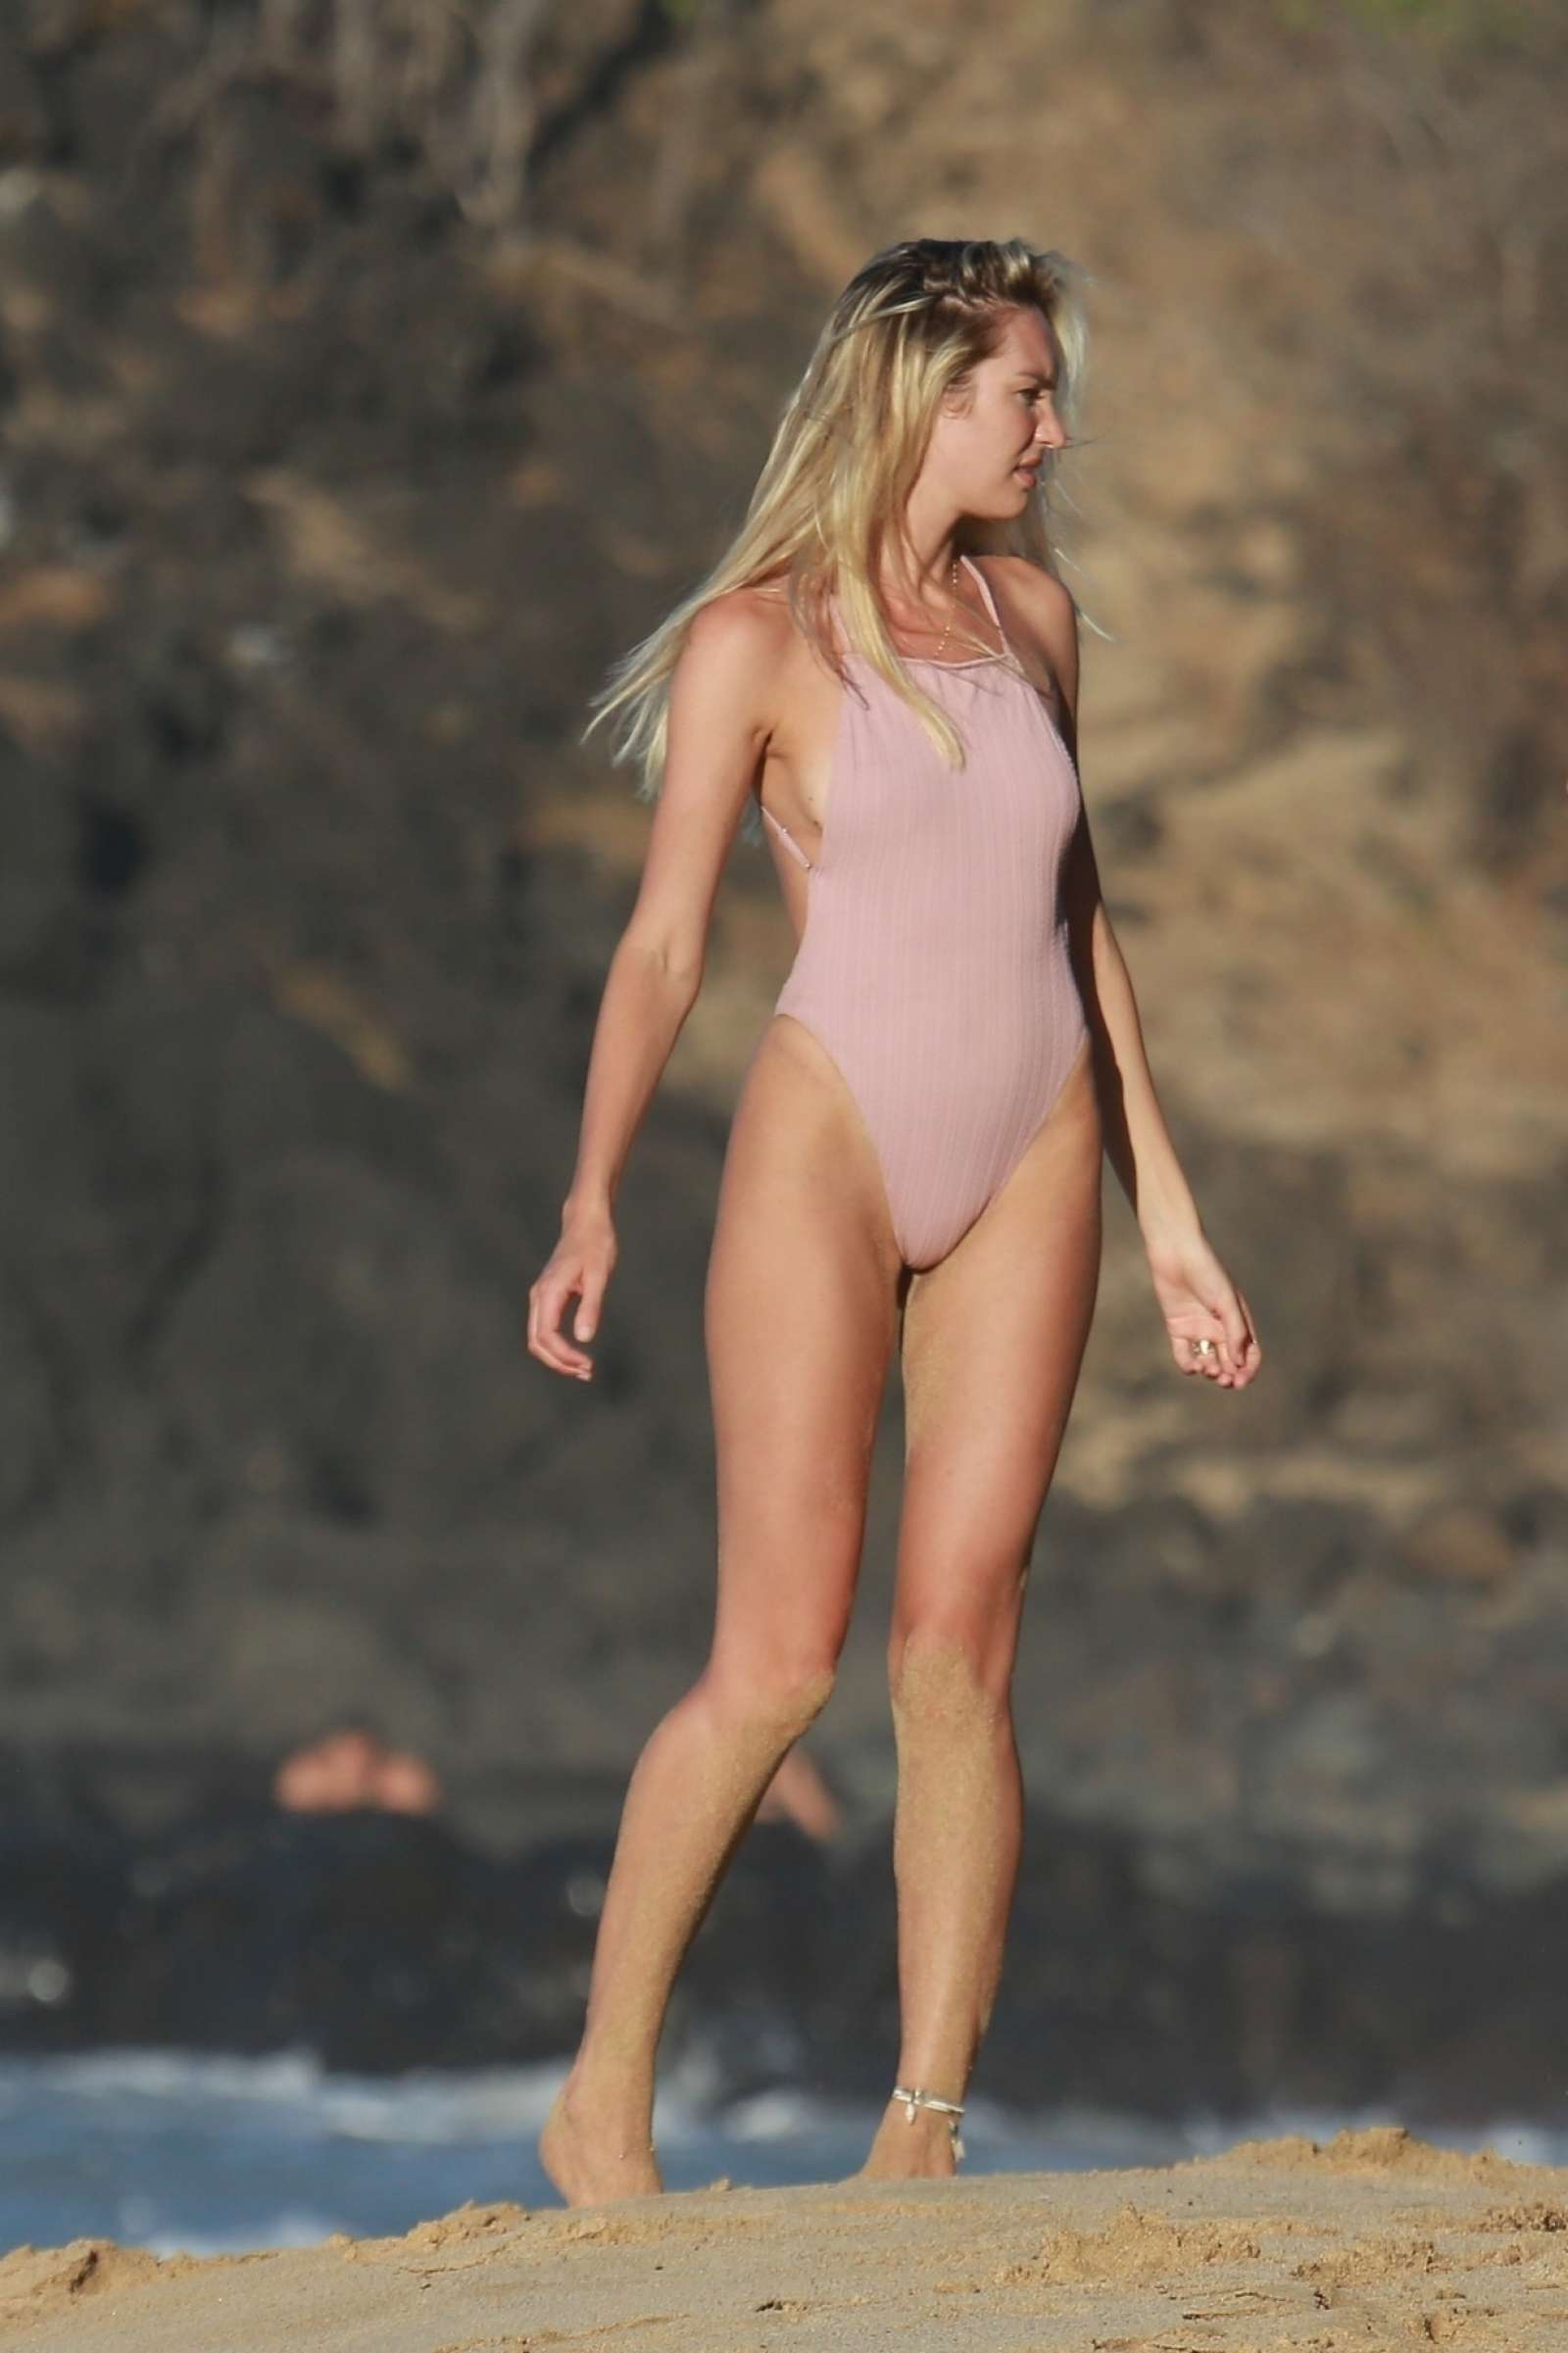 Candice Swanepoel in Swimsuit on the beach of the Island of Fernando De Noronha